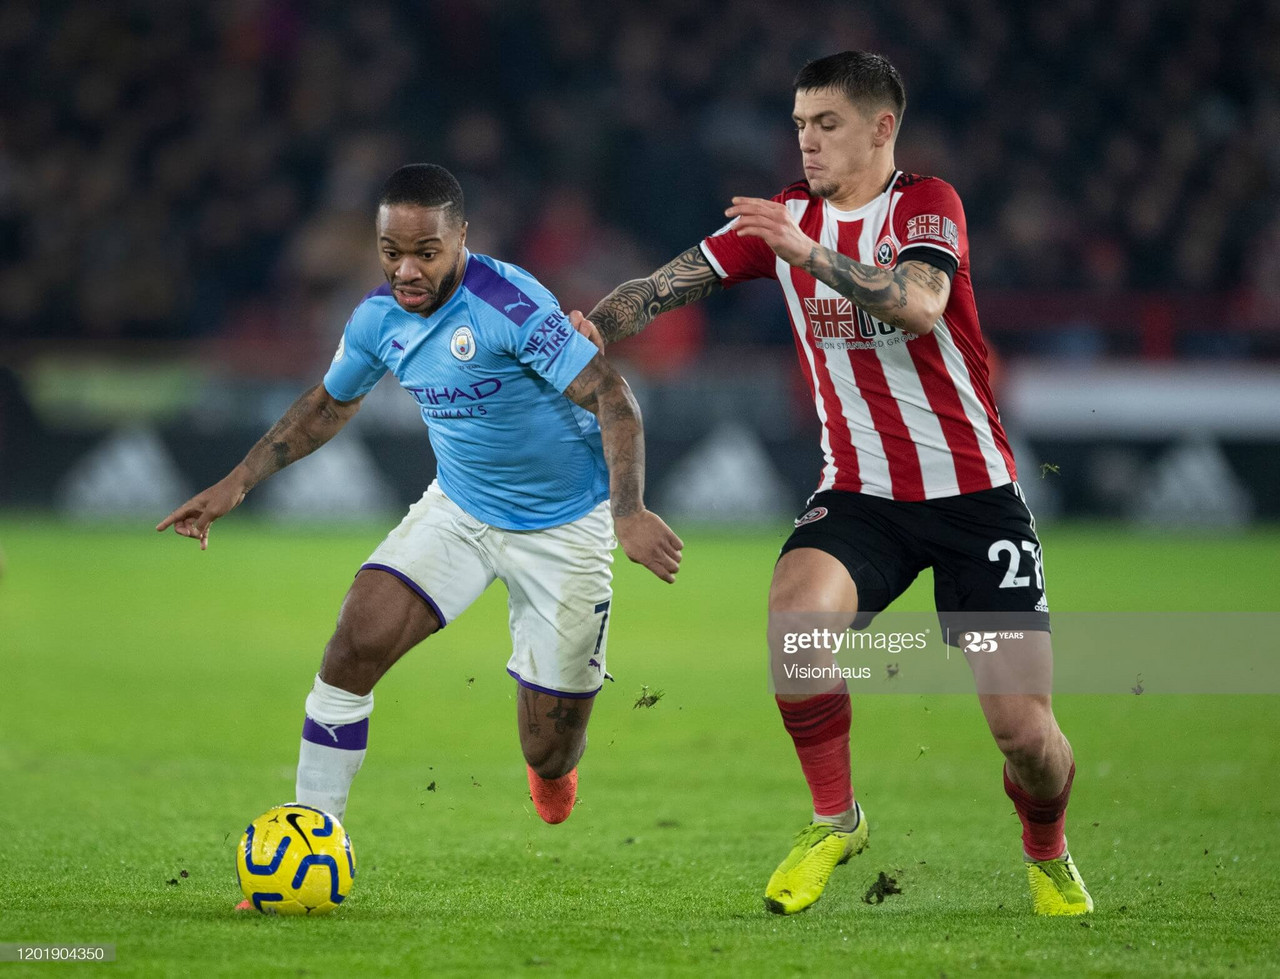 Sheffield United vs Manchester City (0-1): Live Stream, TV Updates and How to Watch Premier League 2020